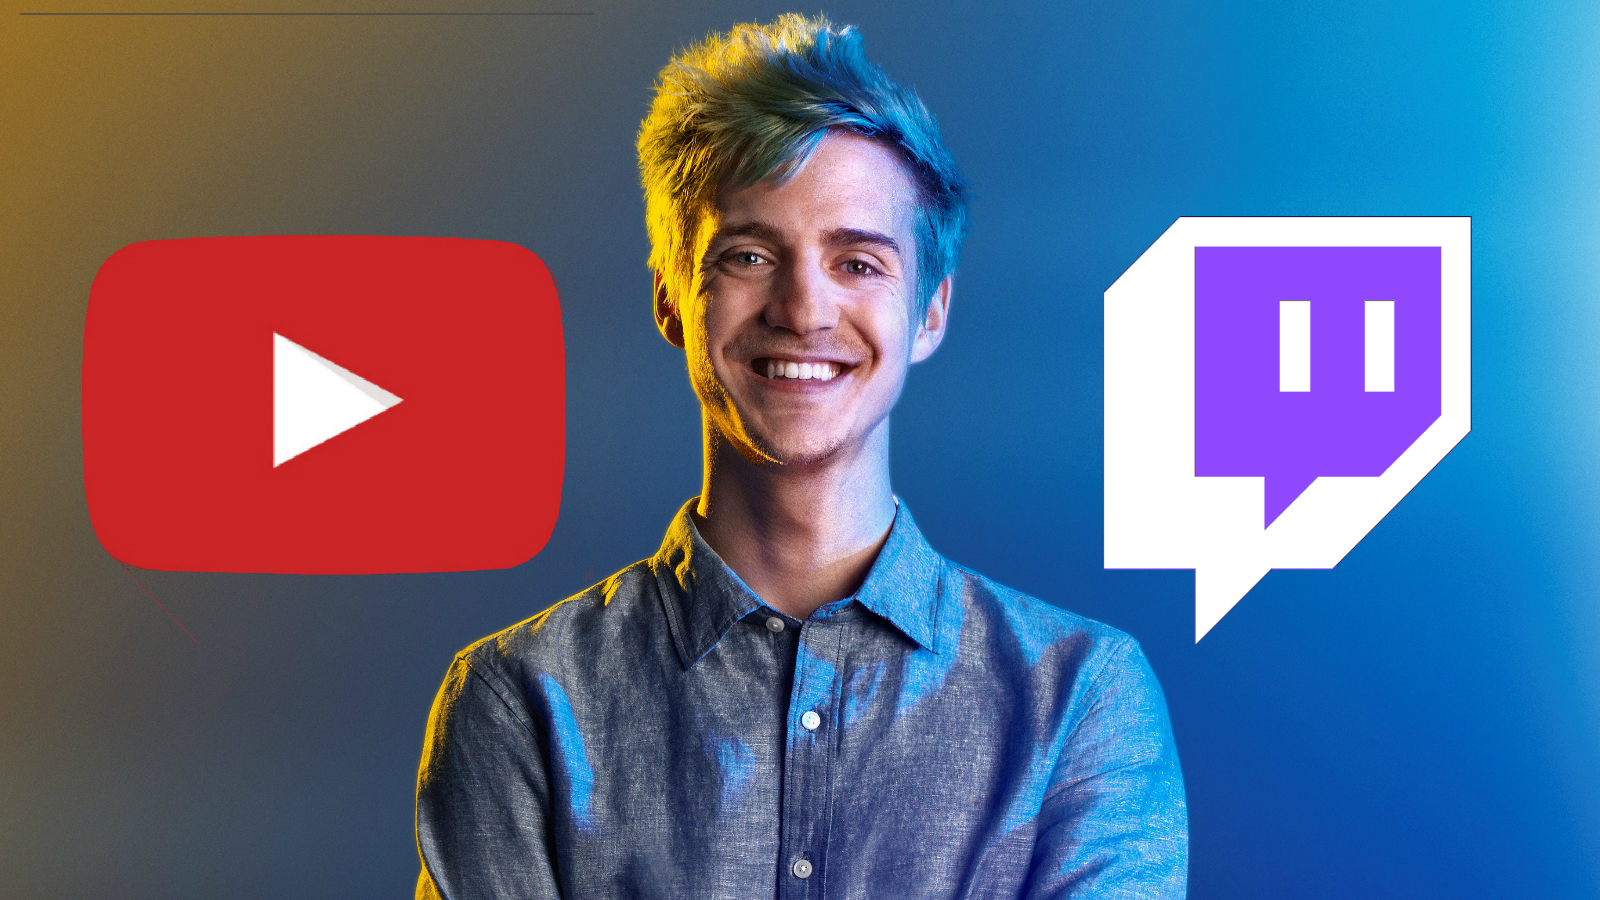 Ninja with YouTube and Twitch logo